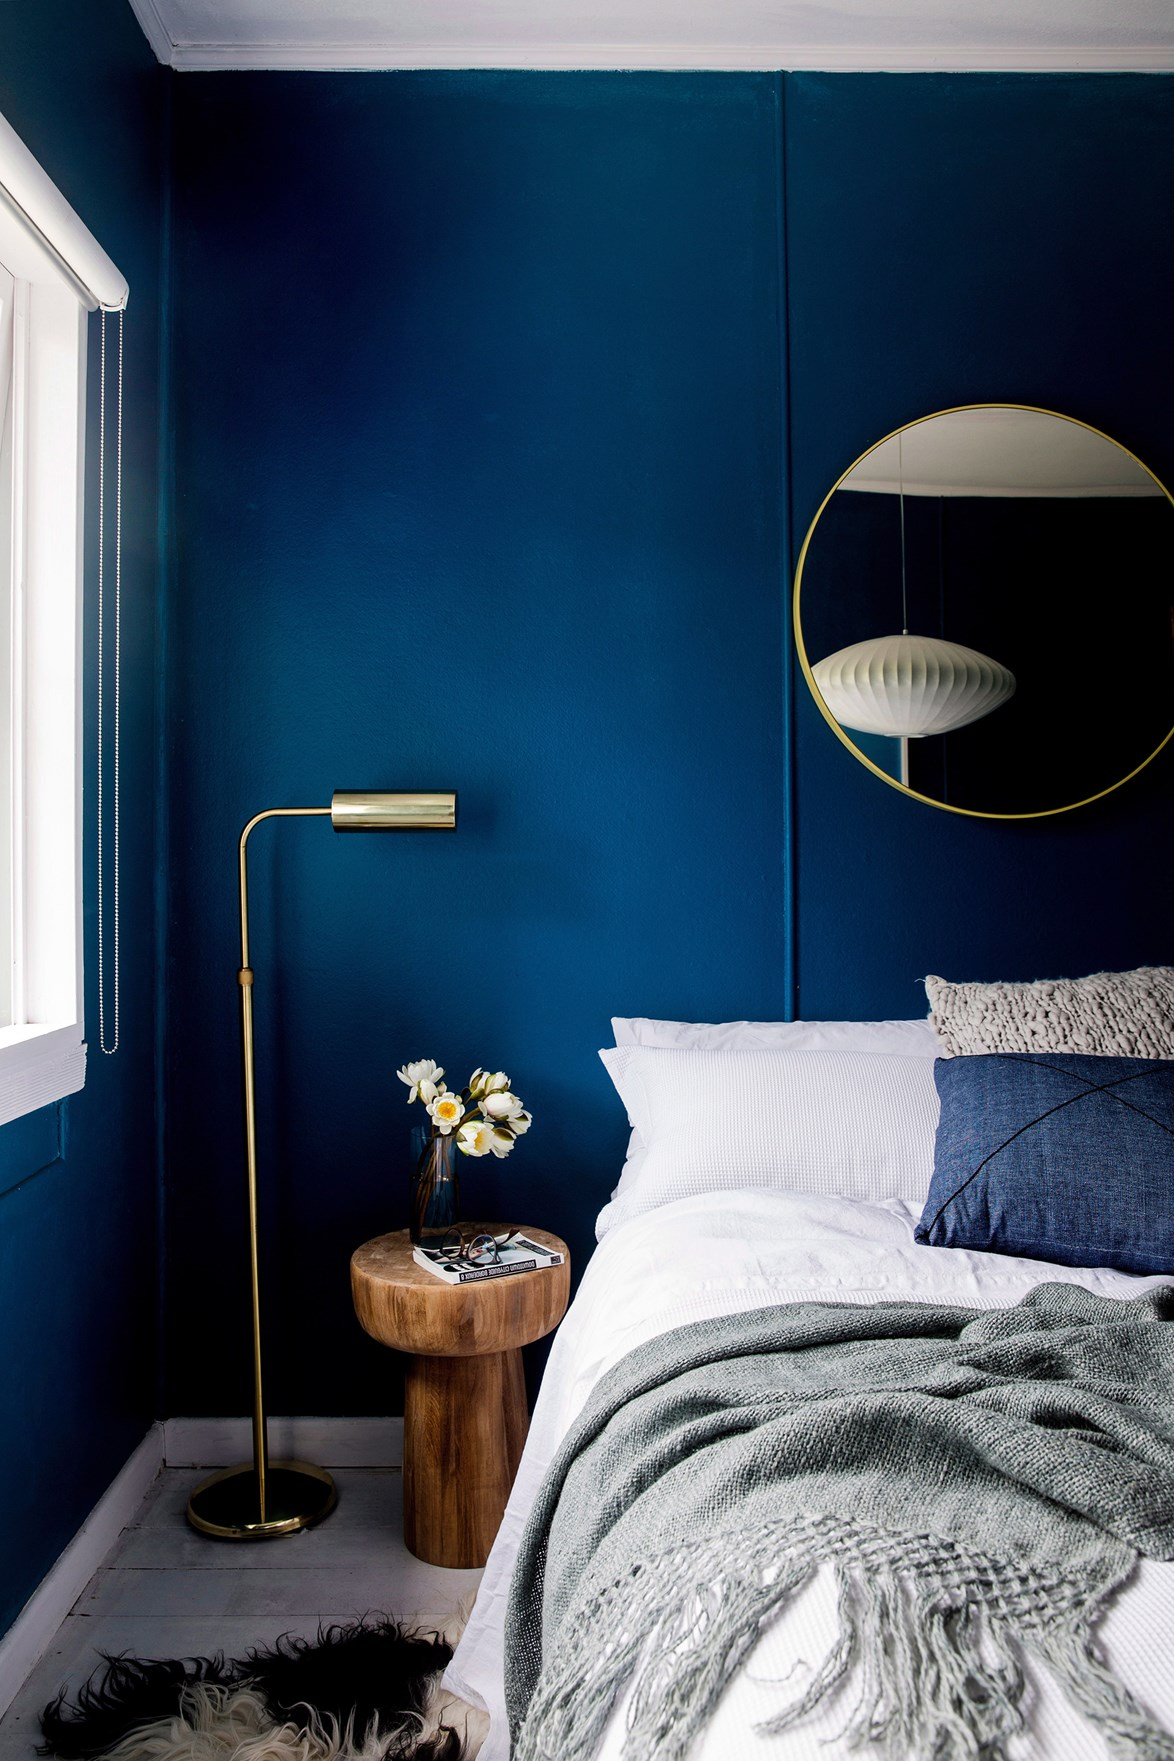 """Mix different textures like sumptuous linen and natural leather with dramatic dark walls for a [dreamy bedroom space](http://www.homestolove.com.au/dreamy-bedroom-accessories-2318